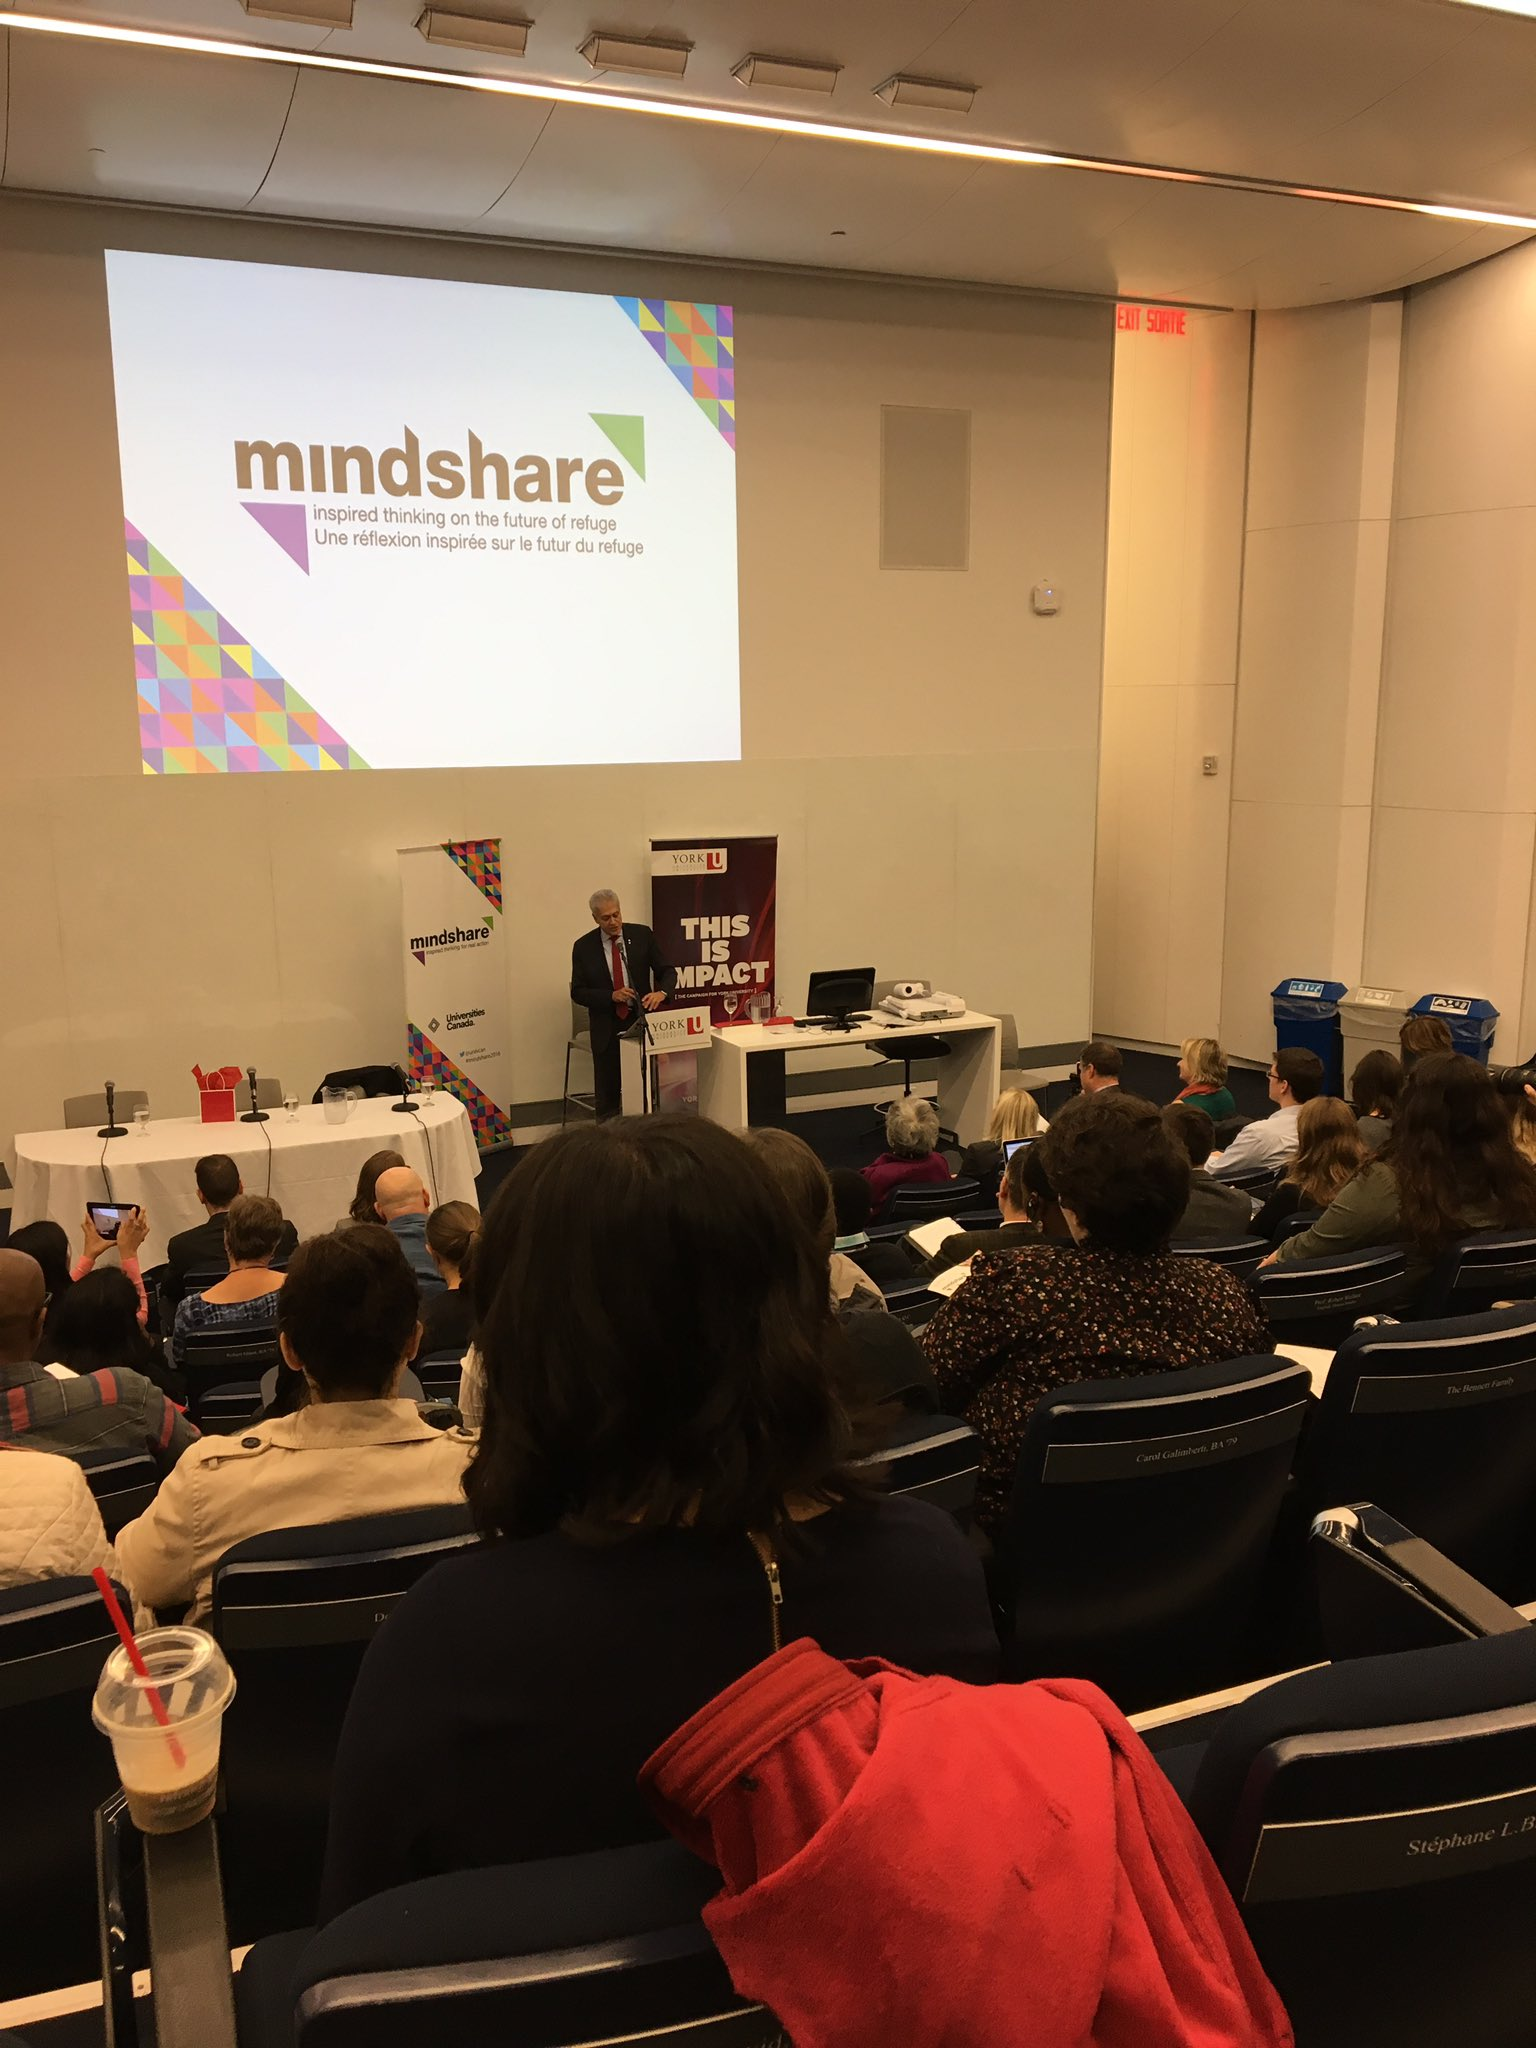 @YorkUPresOffice speaks about @yorku's role in advancing knowledge and scholarship in refuge #mindshare2016 @univcan https://t.co/Dn9E0TNJ2M